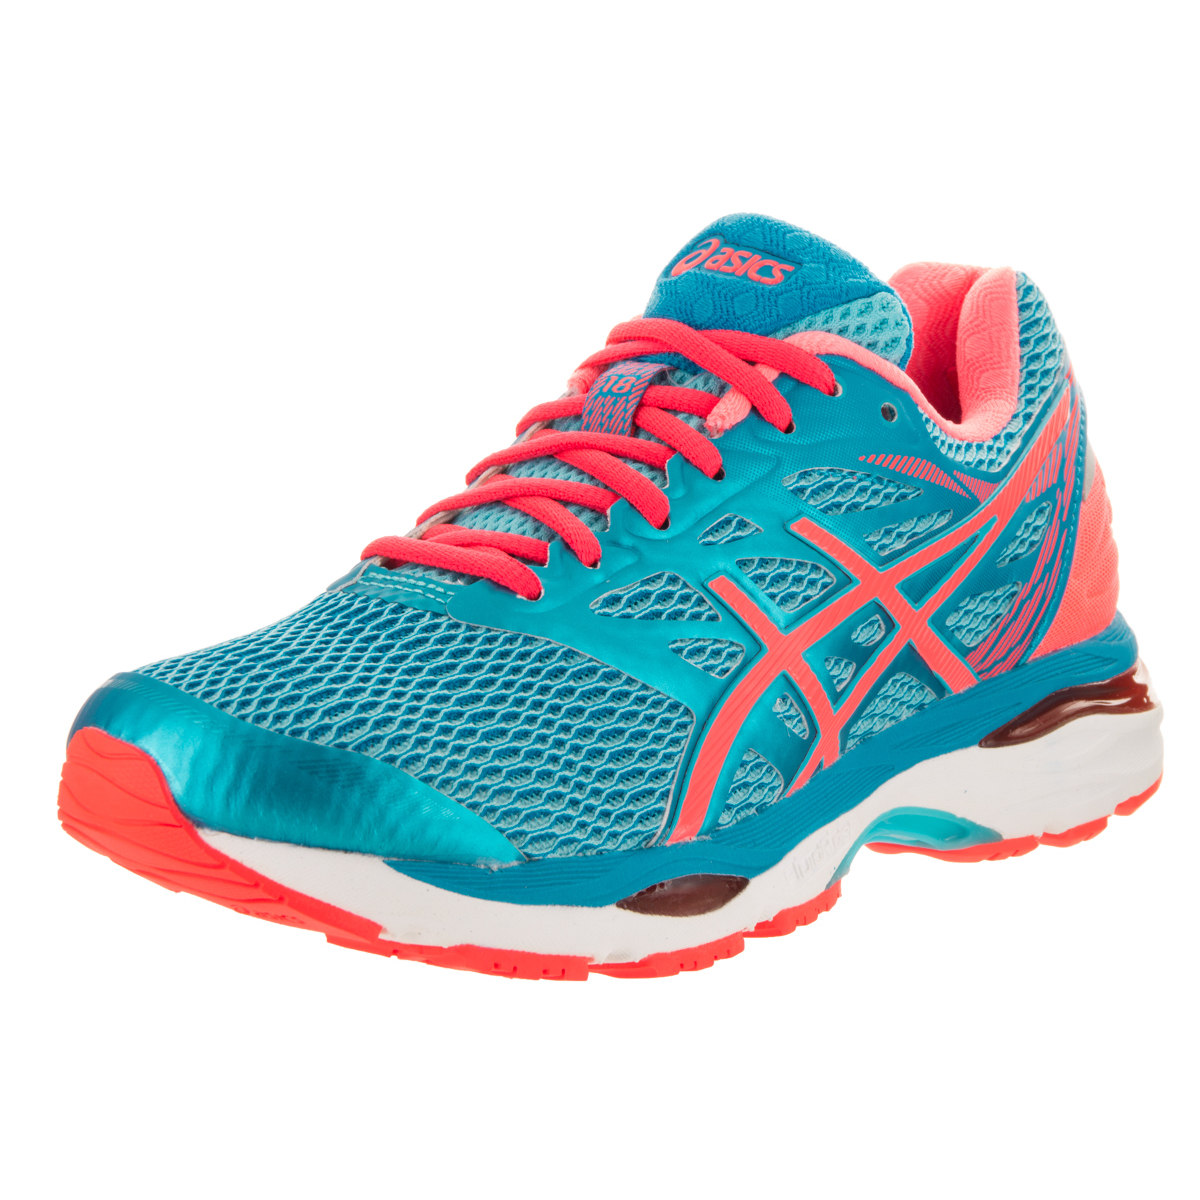 ASICS Asics Women's Gel Cumulus 18 Running Shoe